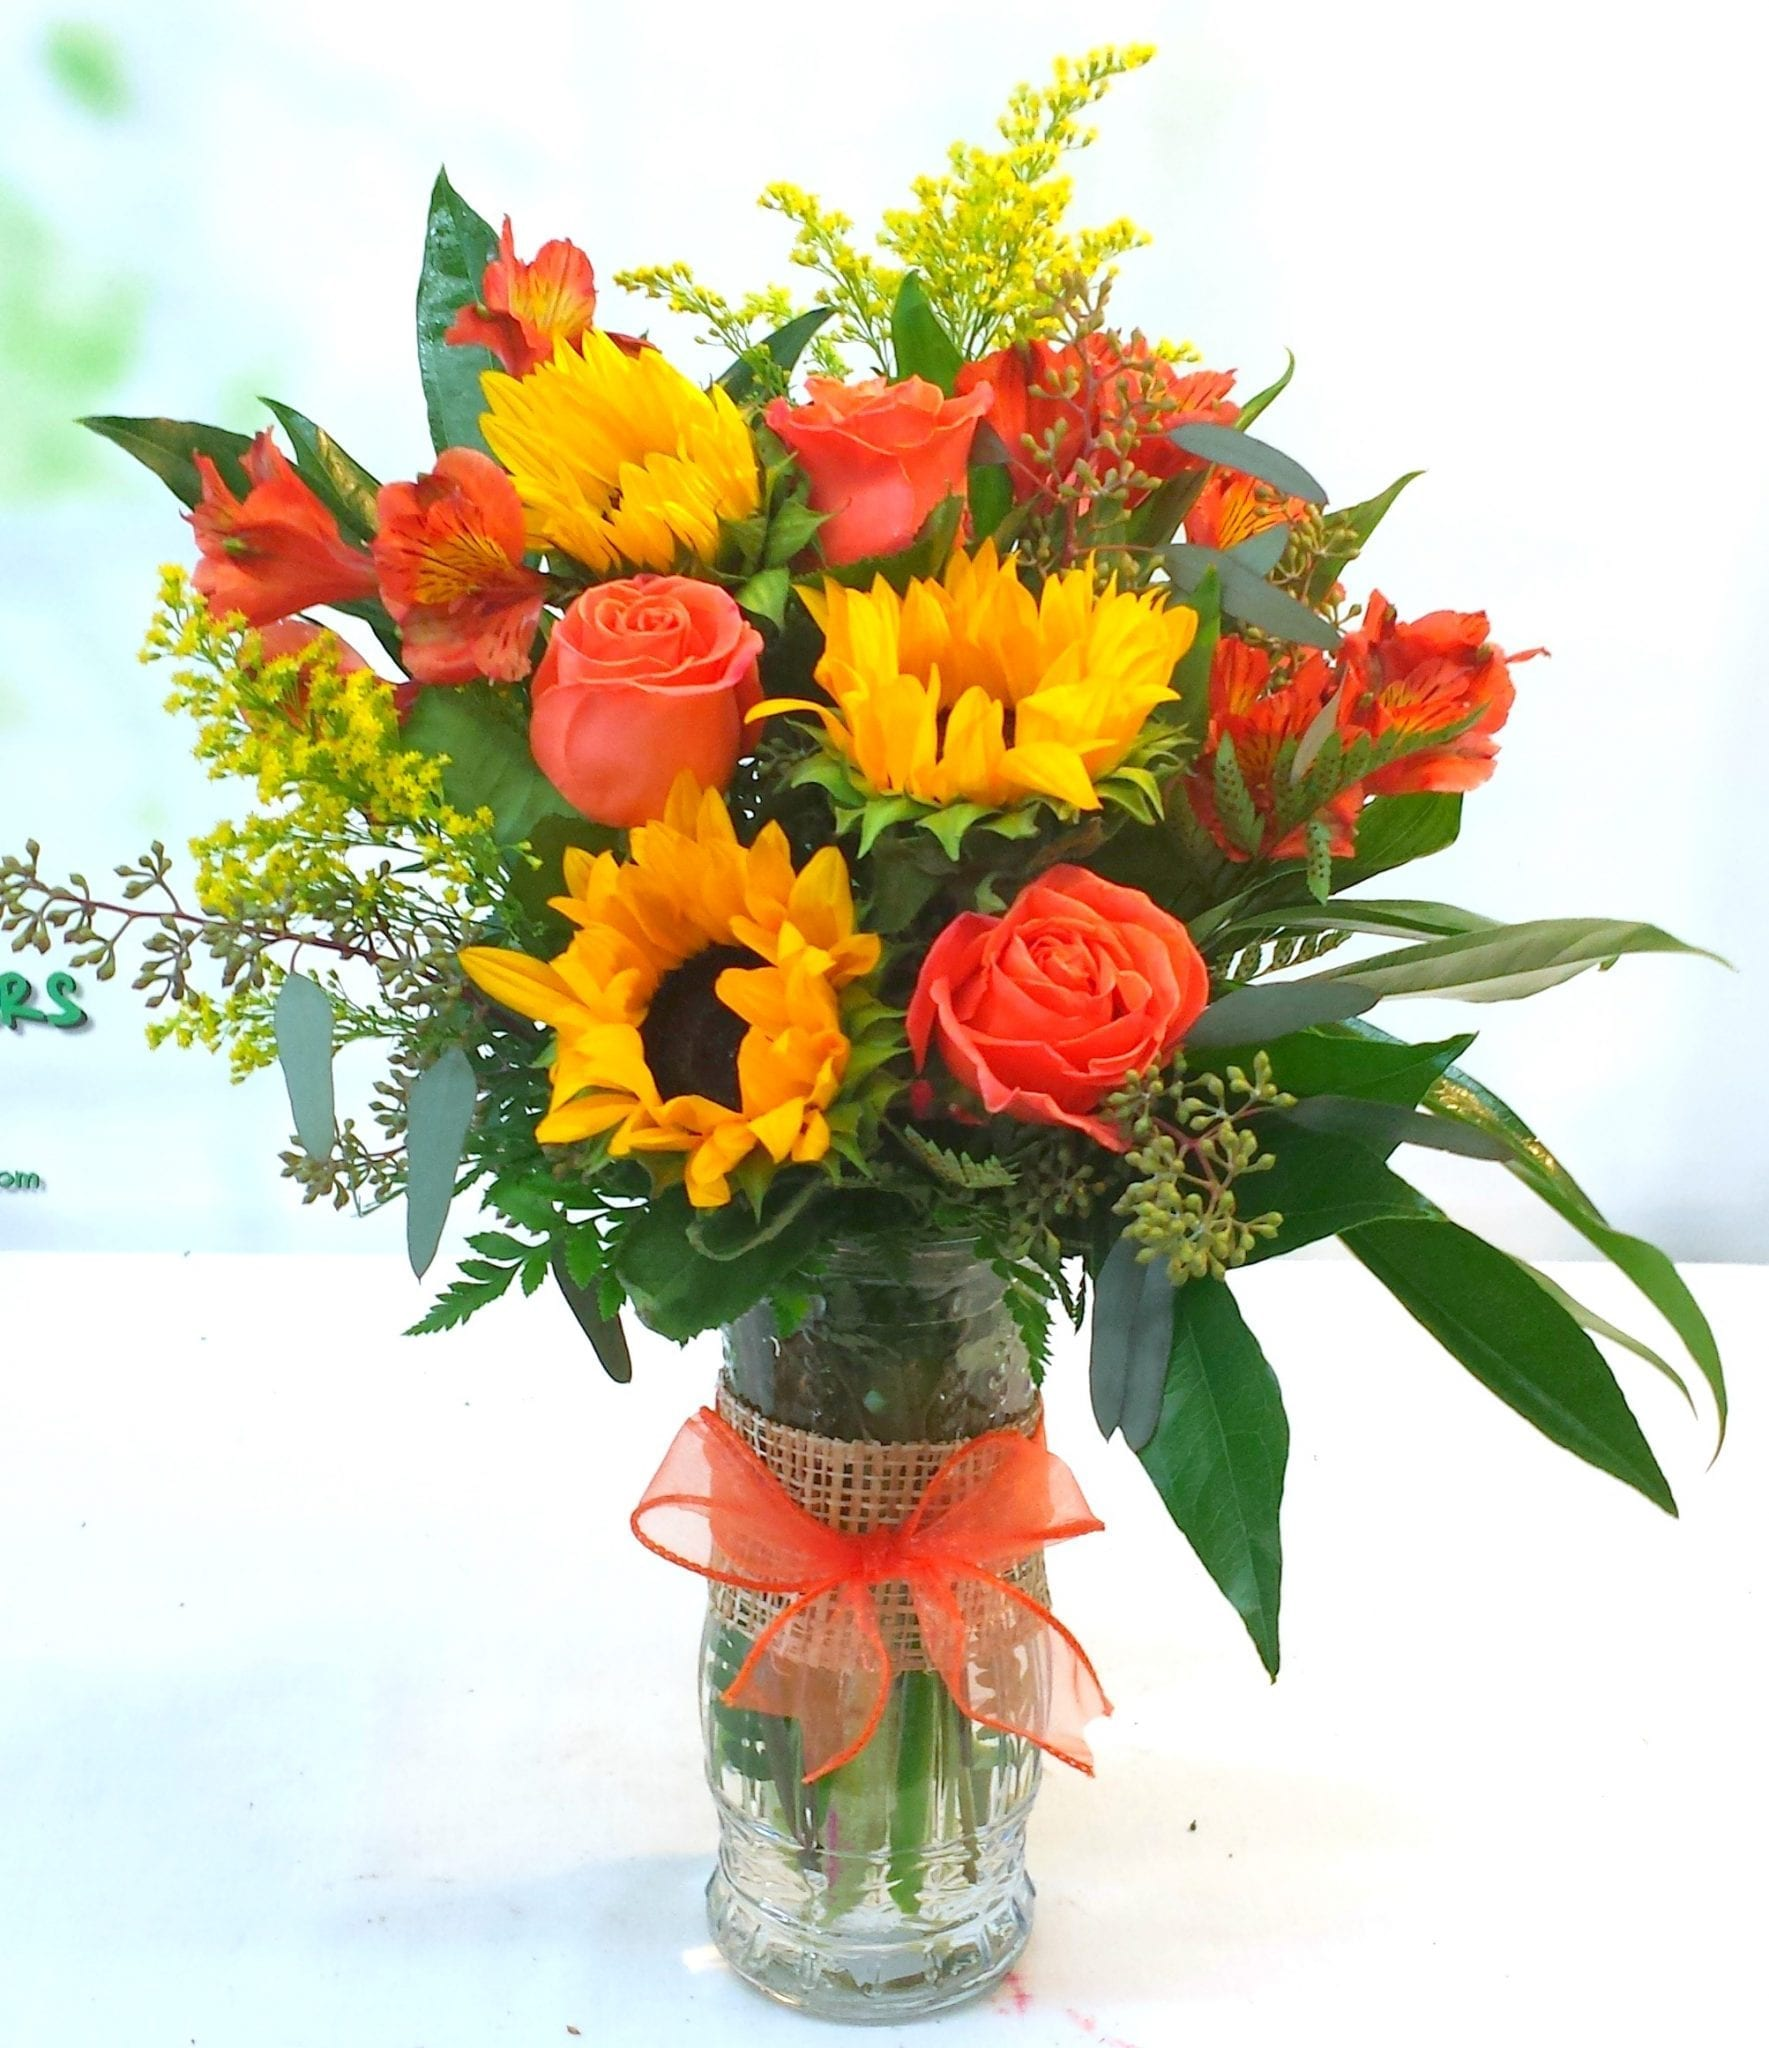 Local flower shop in tempe az fiesta flowers plants gifts suns and roses bouquet v 1147 izmirmasajfo